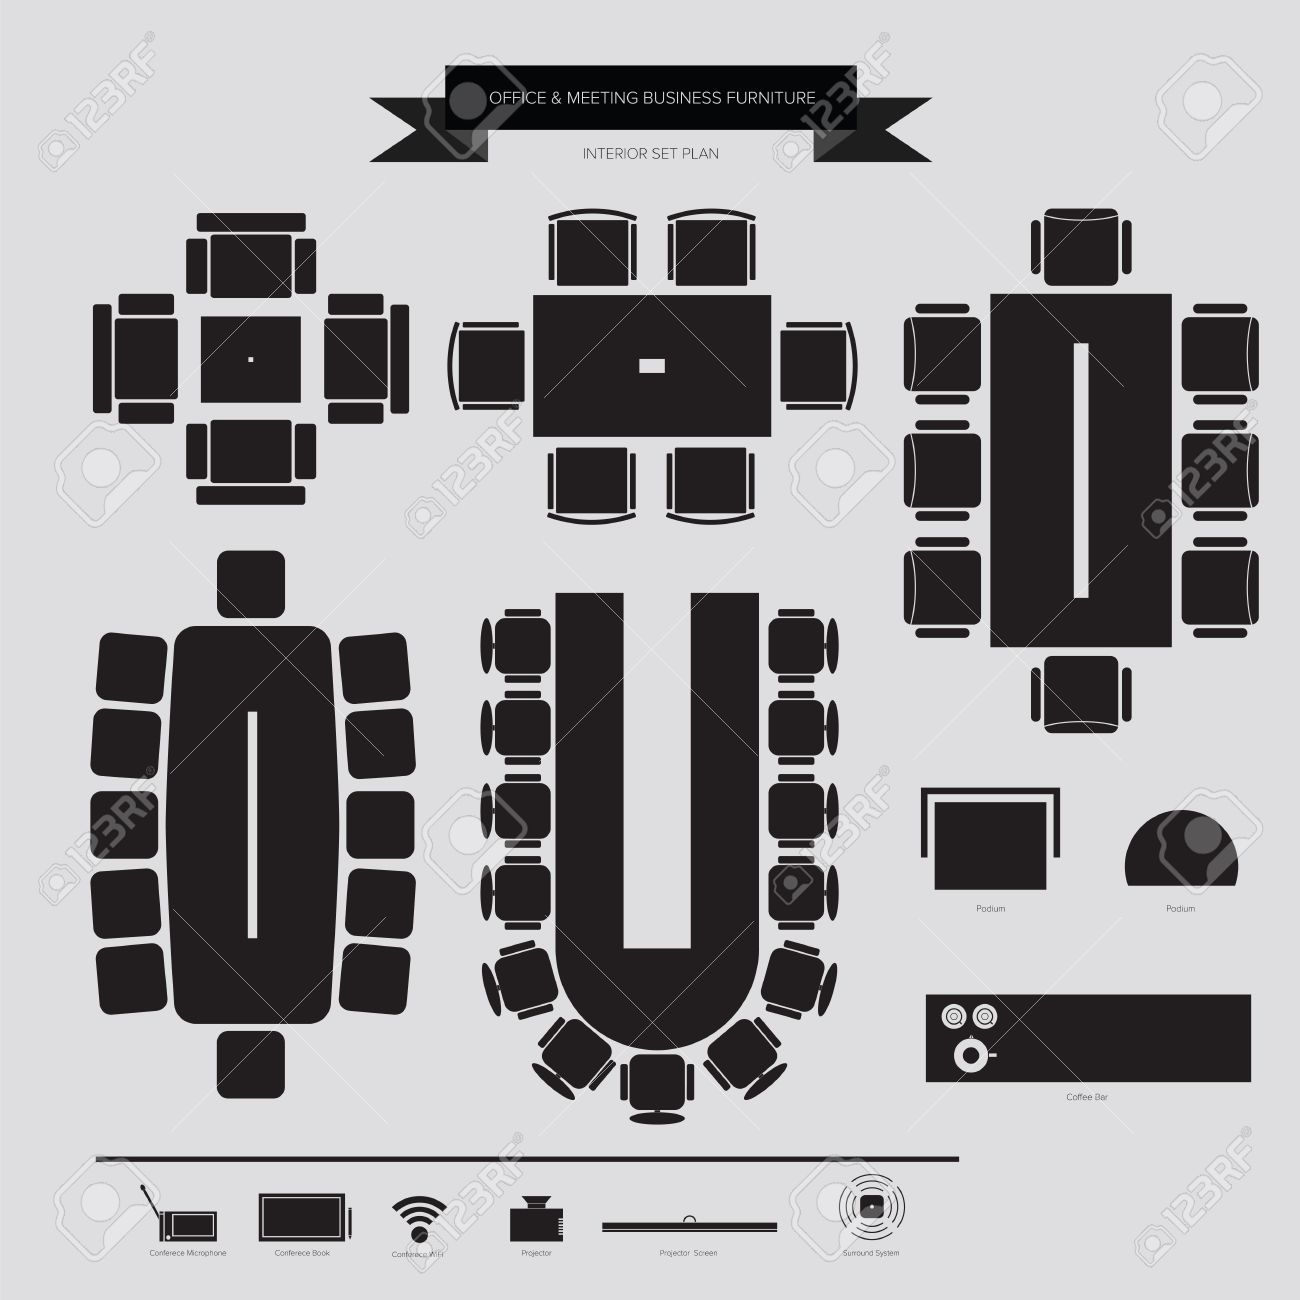 Office furniture top view - Office And Conferance Business Furniture Icon Top View For Interior Plan Stock Vector 32601598